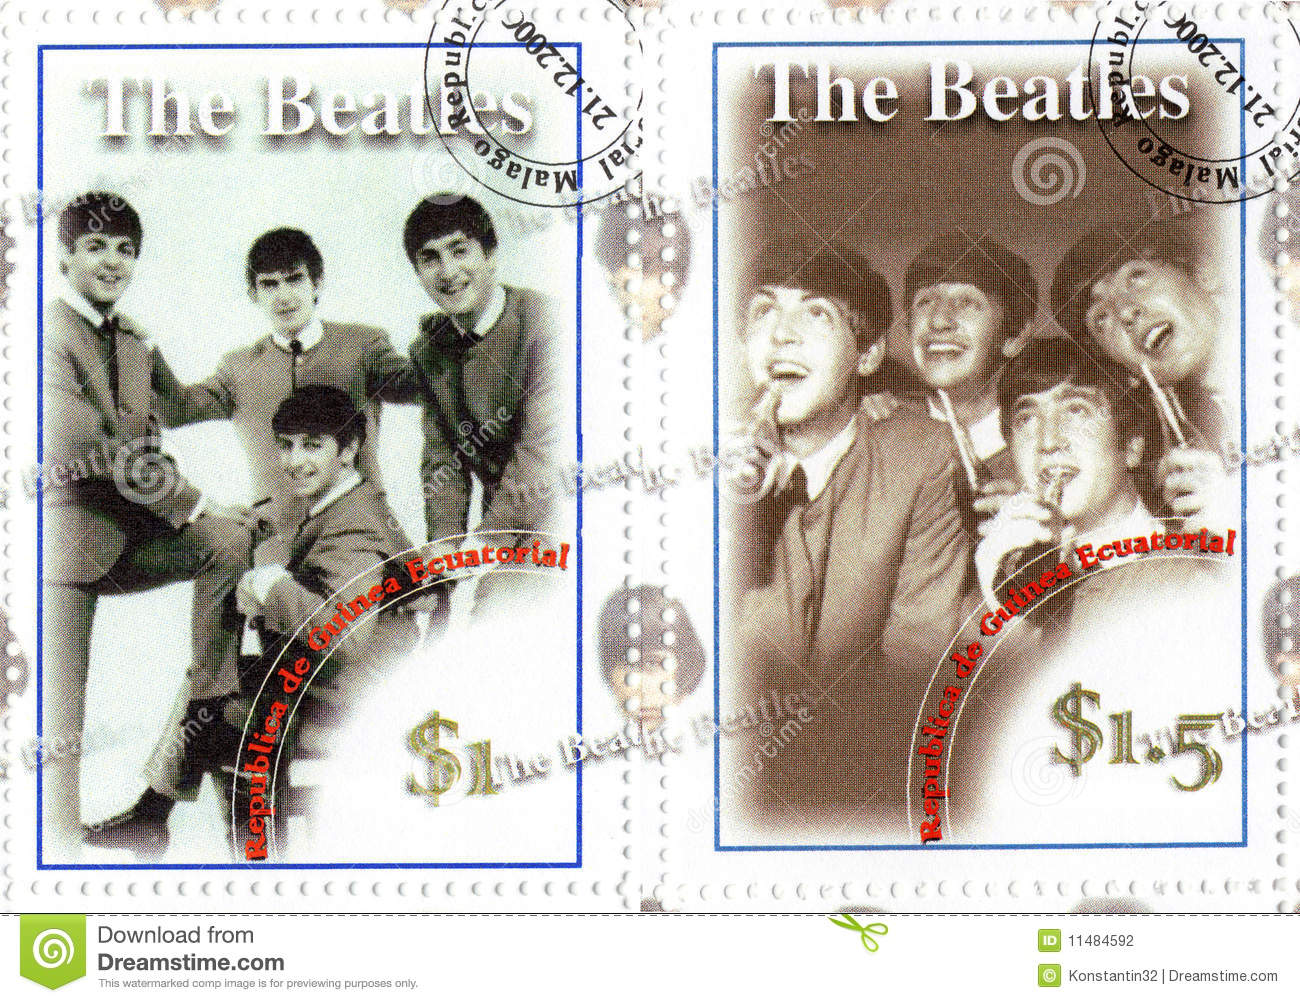 Famous group of The Beatles